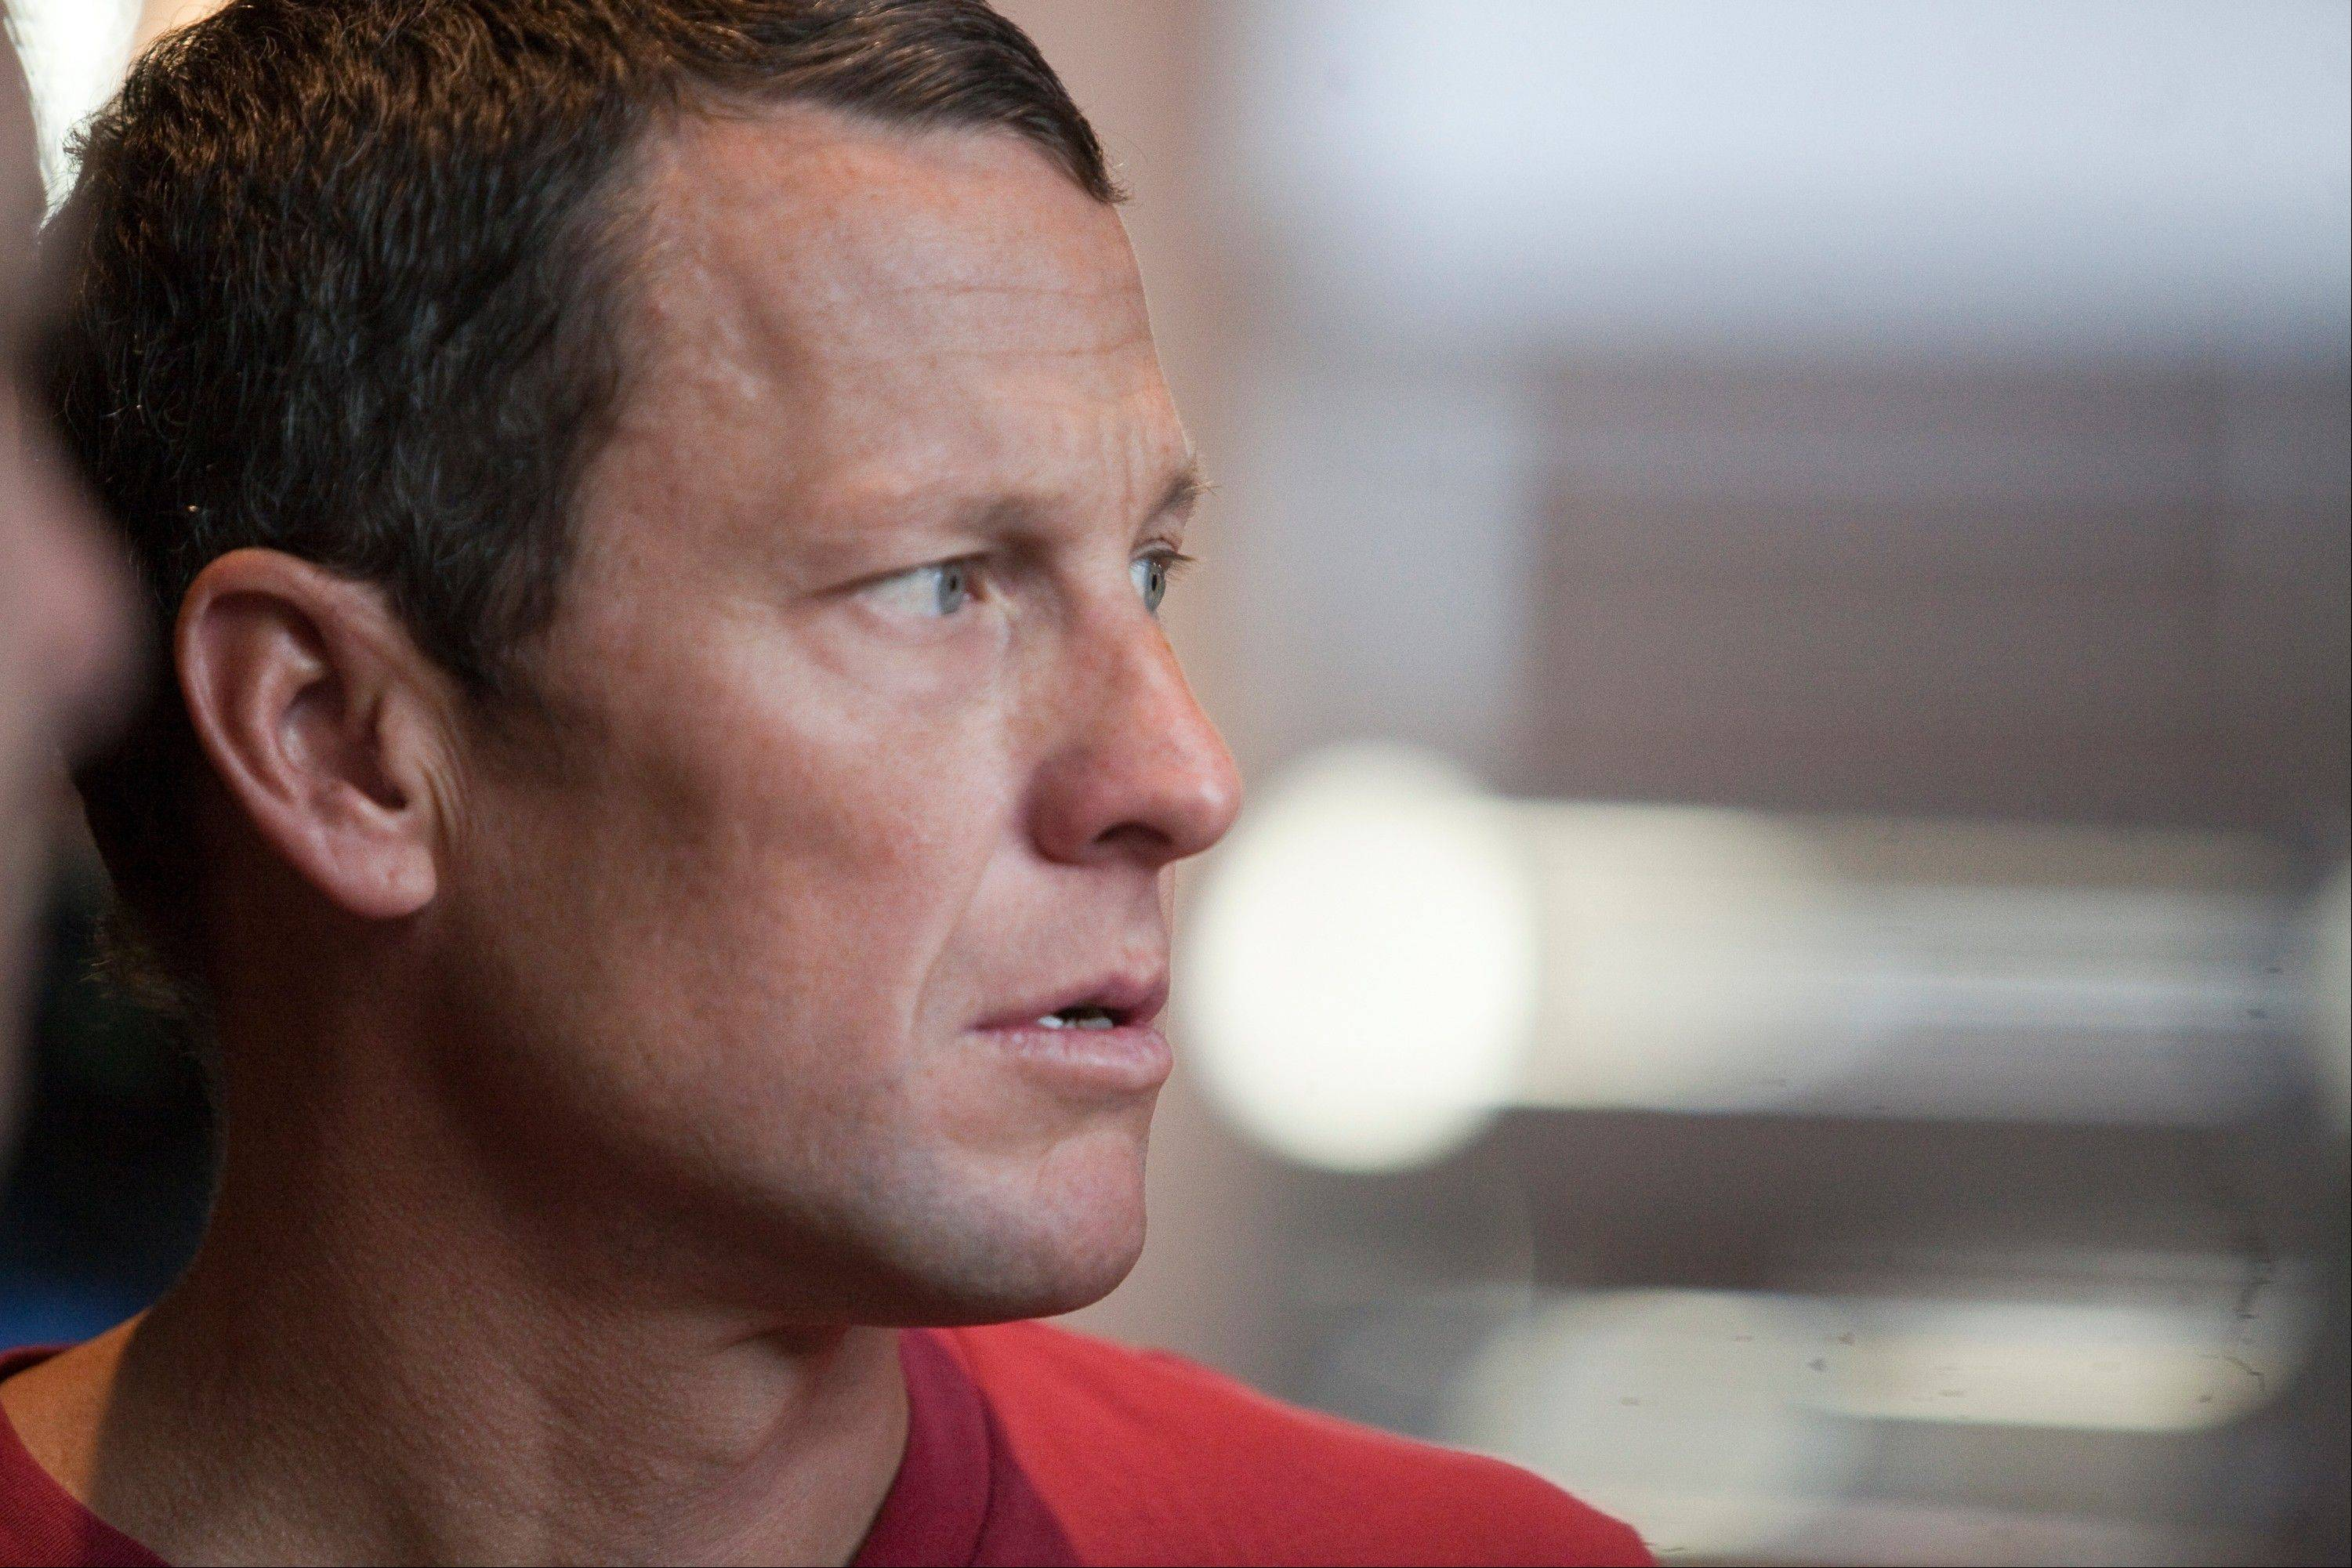 Lance Armstrong, who was stripped of his seven Tour de France titles and banned from racing in a doping scandal, may still find some redemption. Armstrong�s only hope may come, not from an interview with Oprah Winfrey, but with total cooperation with the anti-doping and cycling authorities who say he was a serial cheat.